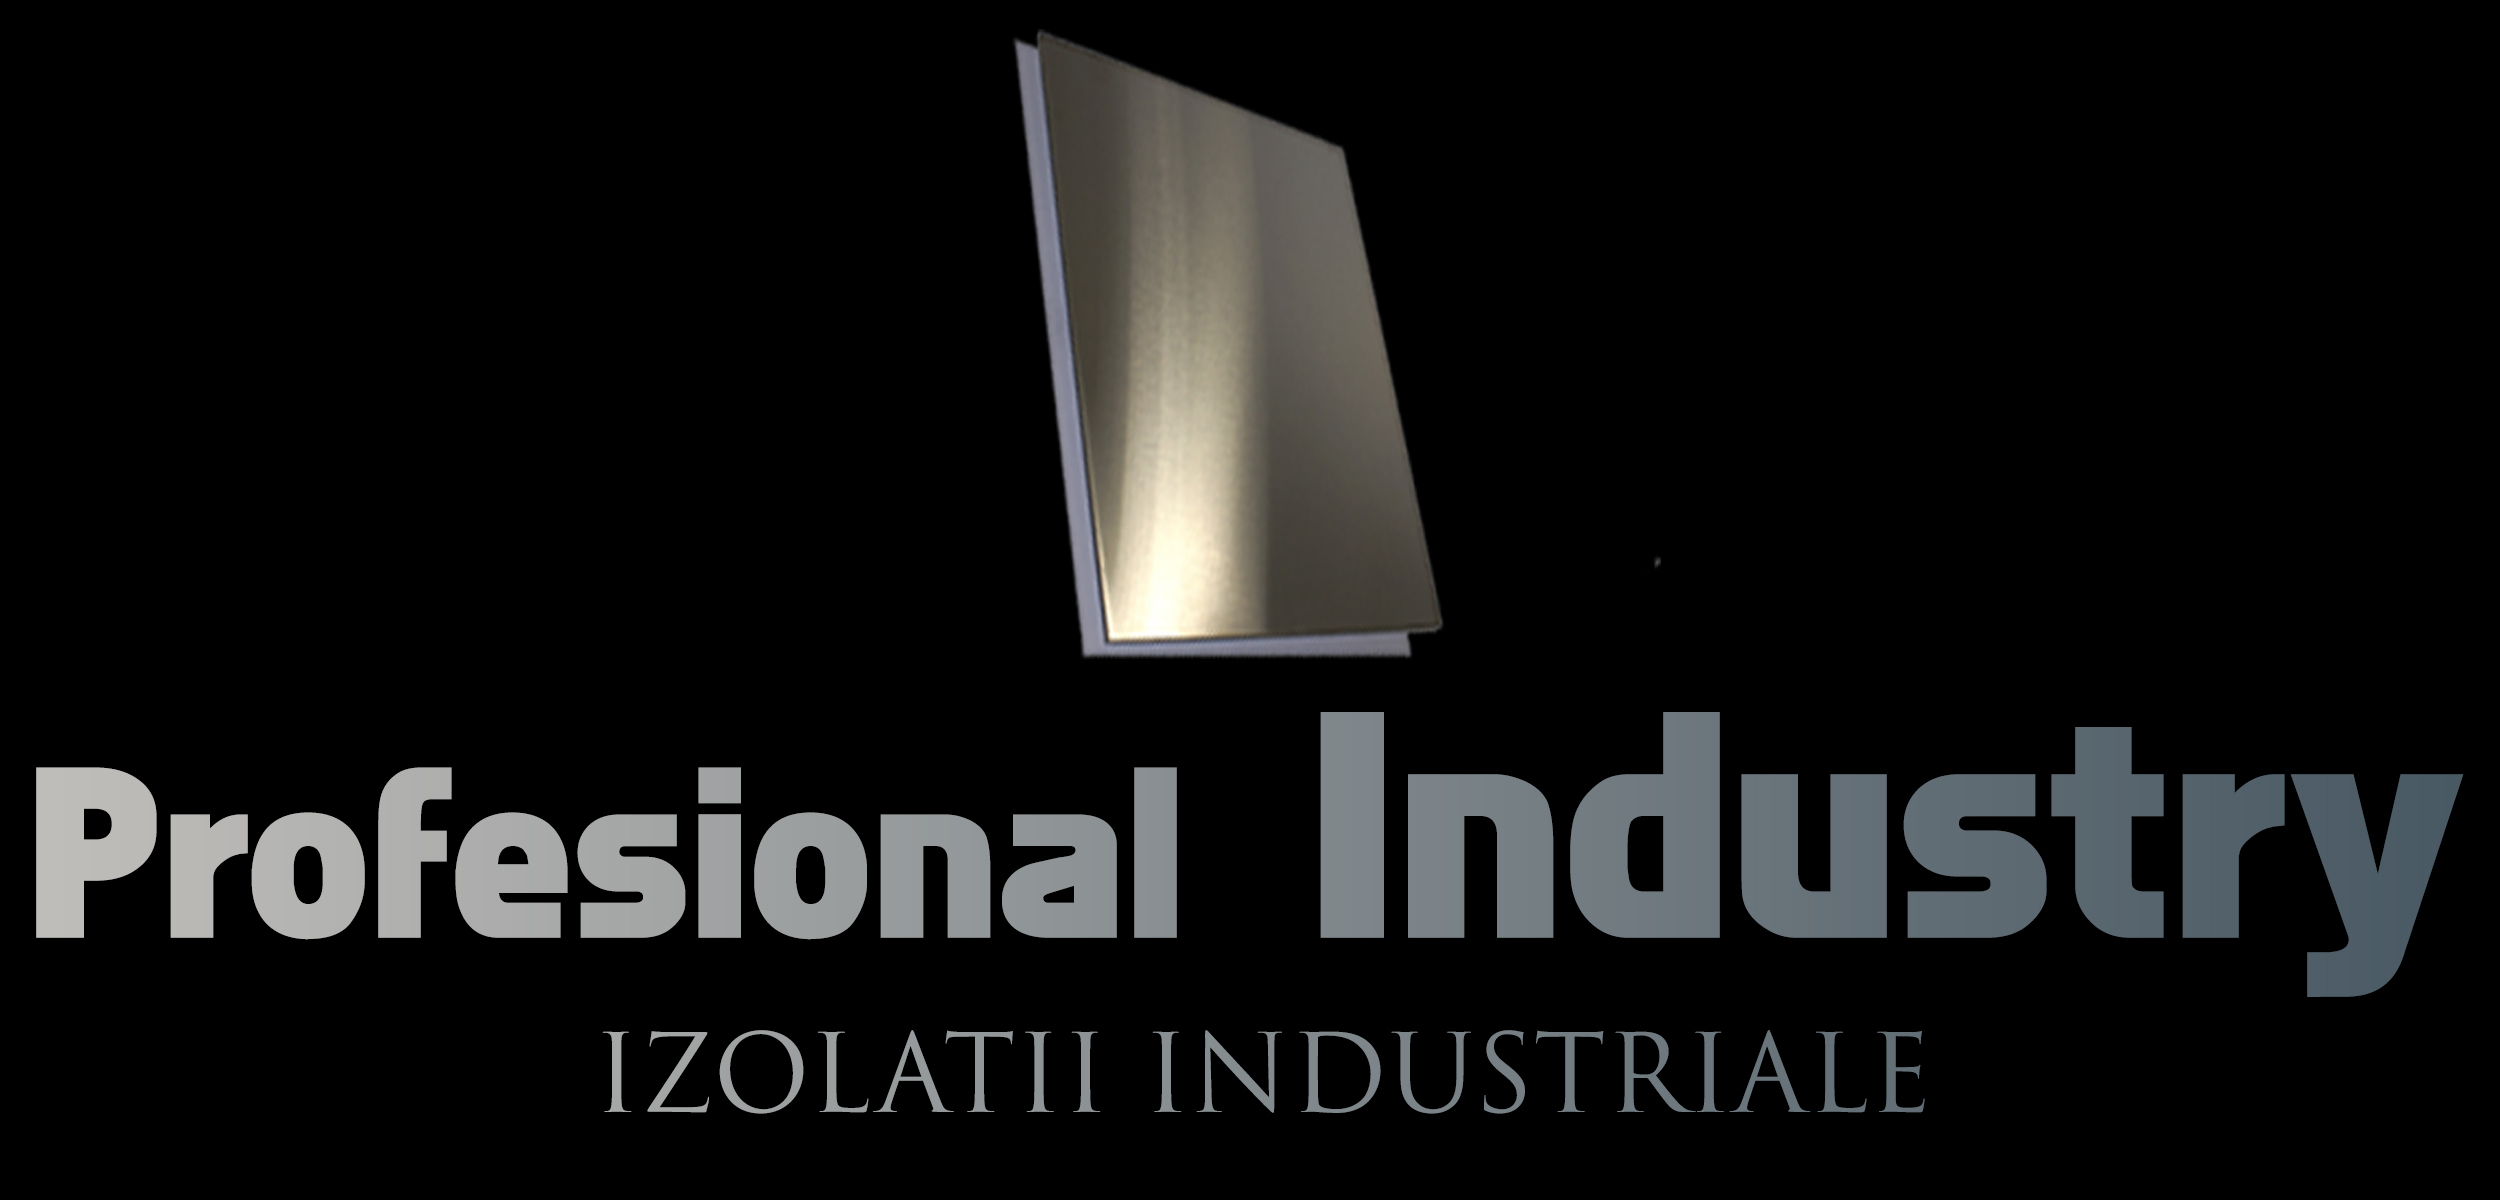 Profesional Industry